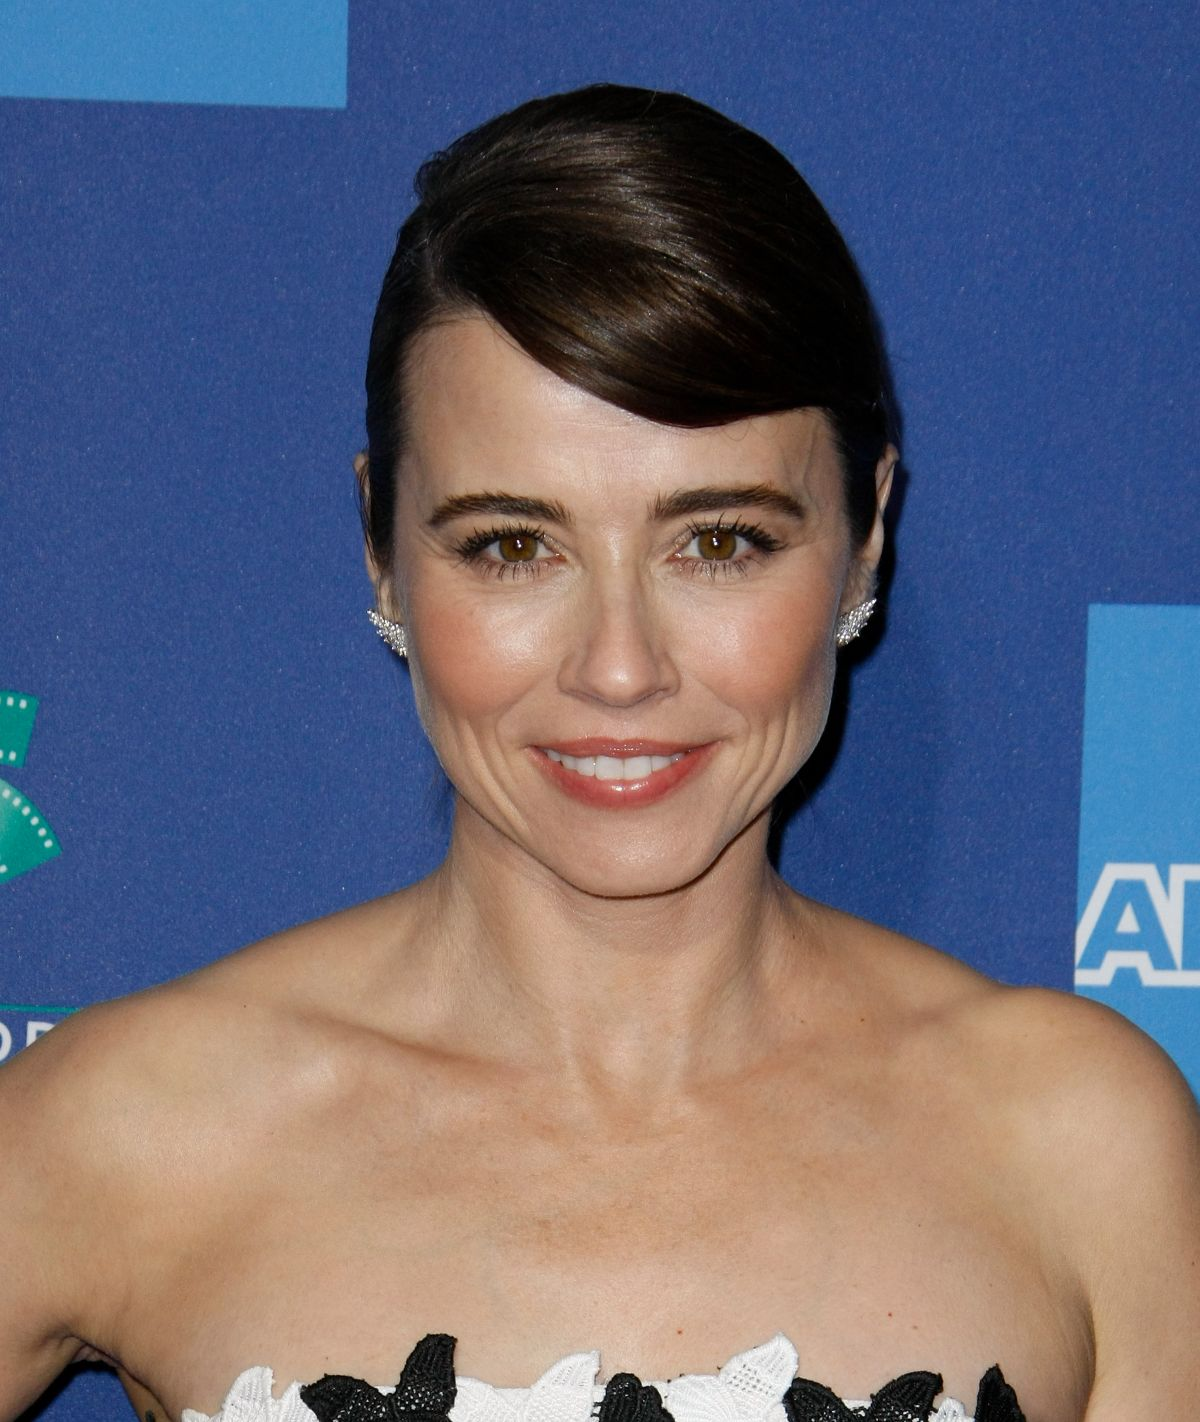 linda-cardellini-at-30th-annual-palm-springs-international-film-festival-awards-gala-01-03-2019-5.jpg